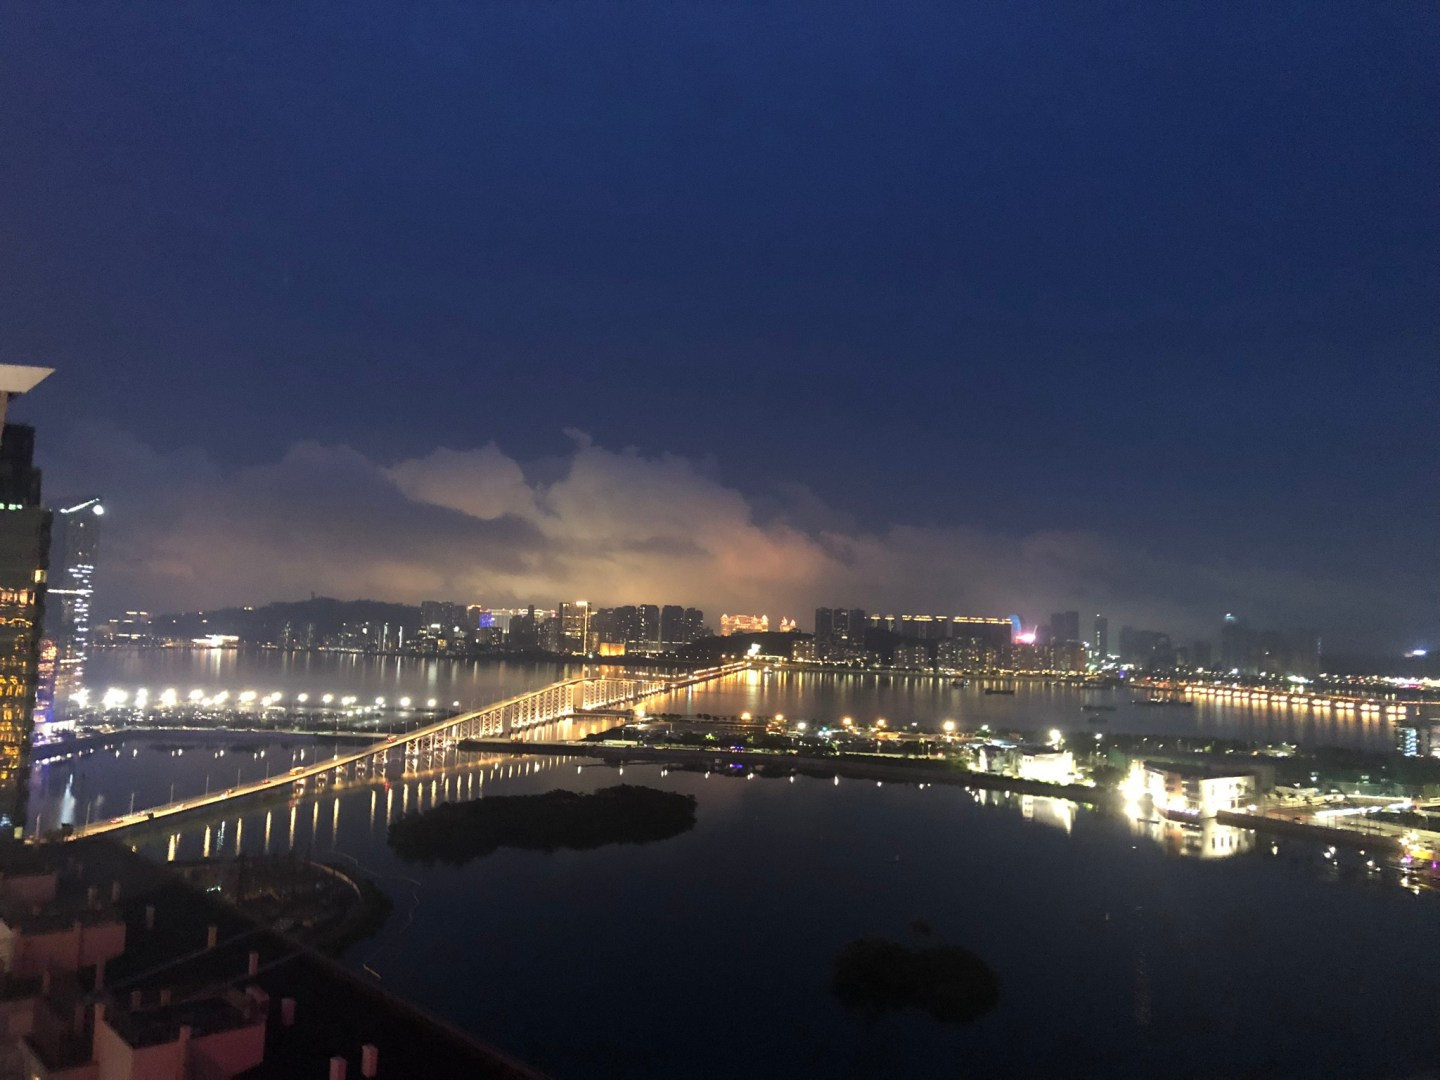 Skyline views of Macau